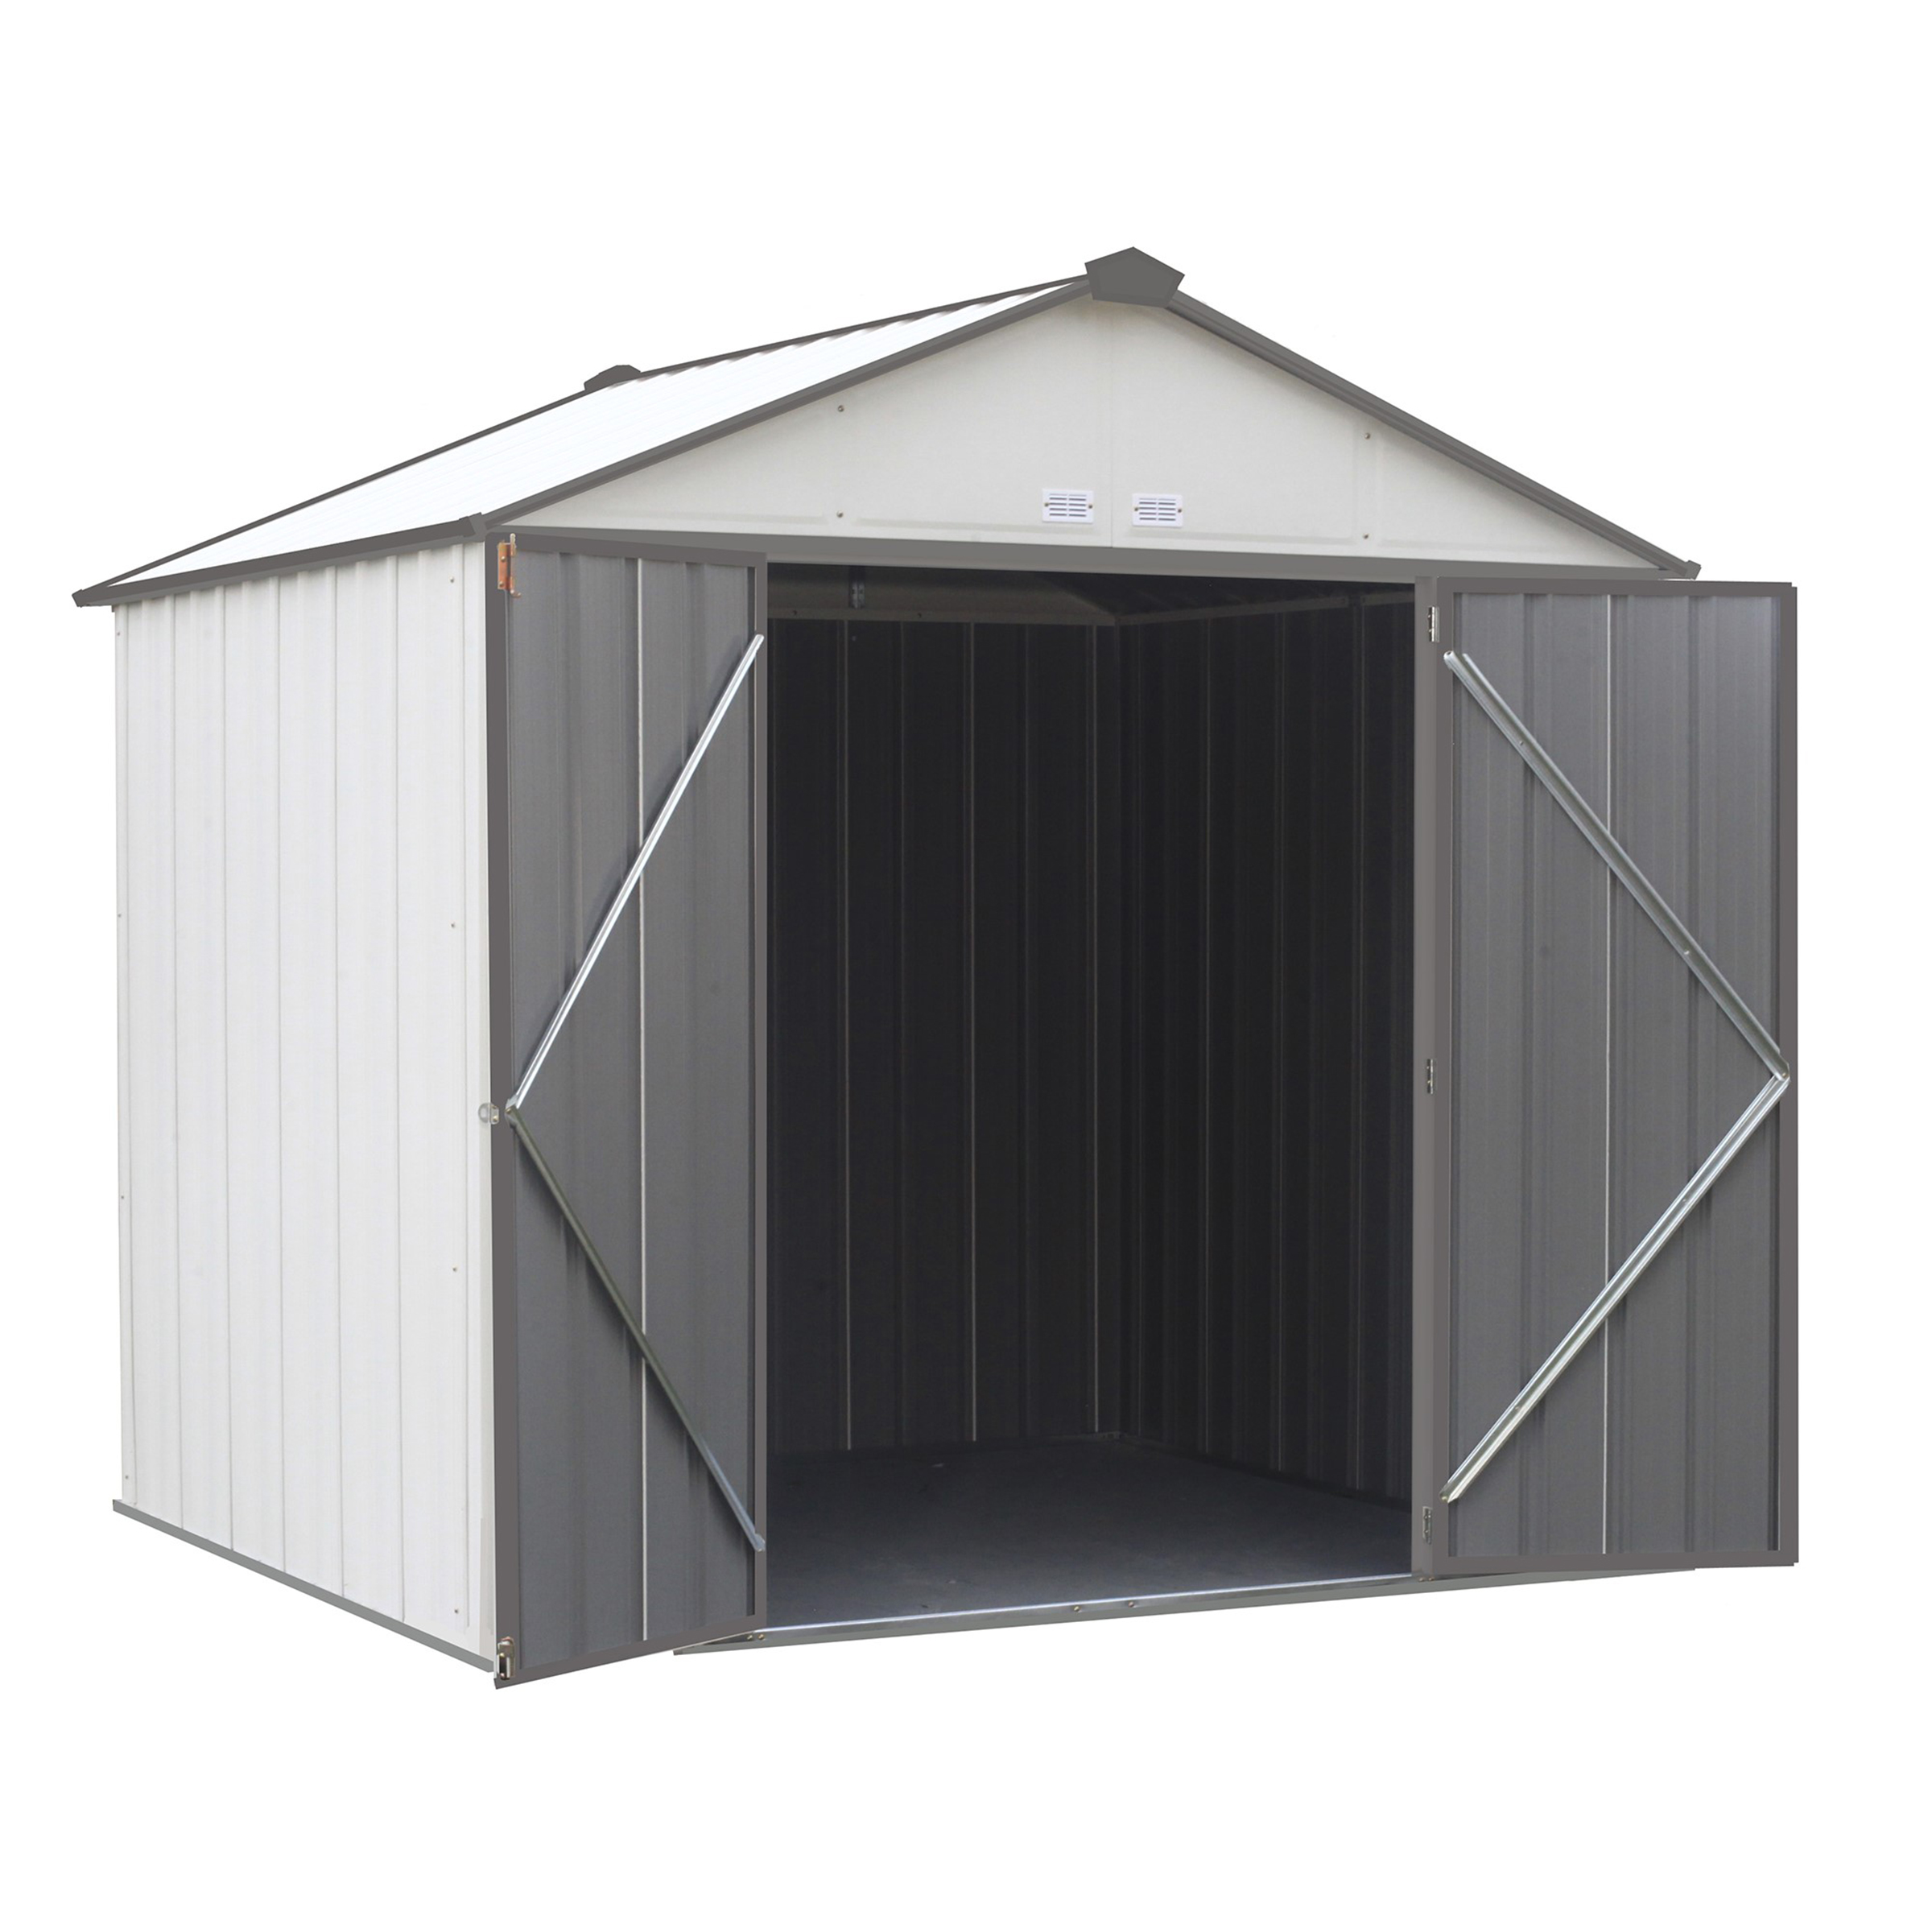 EZEE Shed , 8x7, High Gable, 72 in walls, Cream & Charcoal